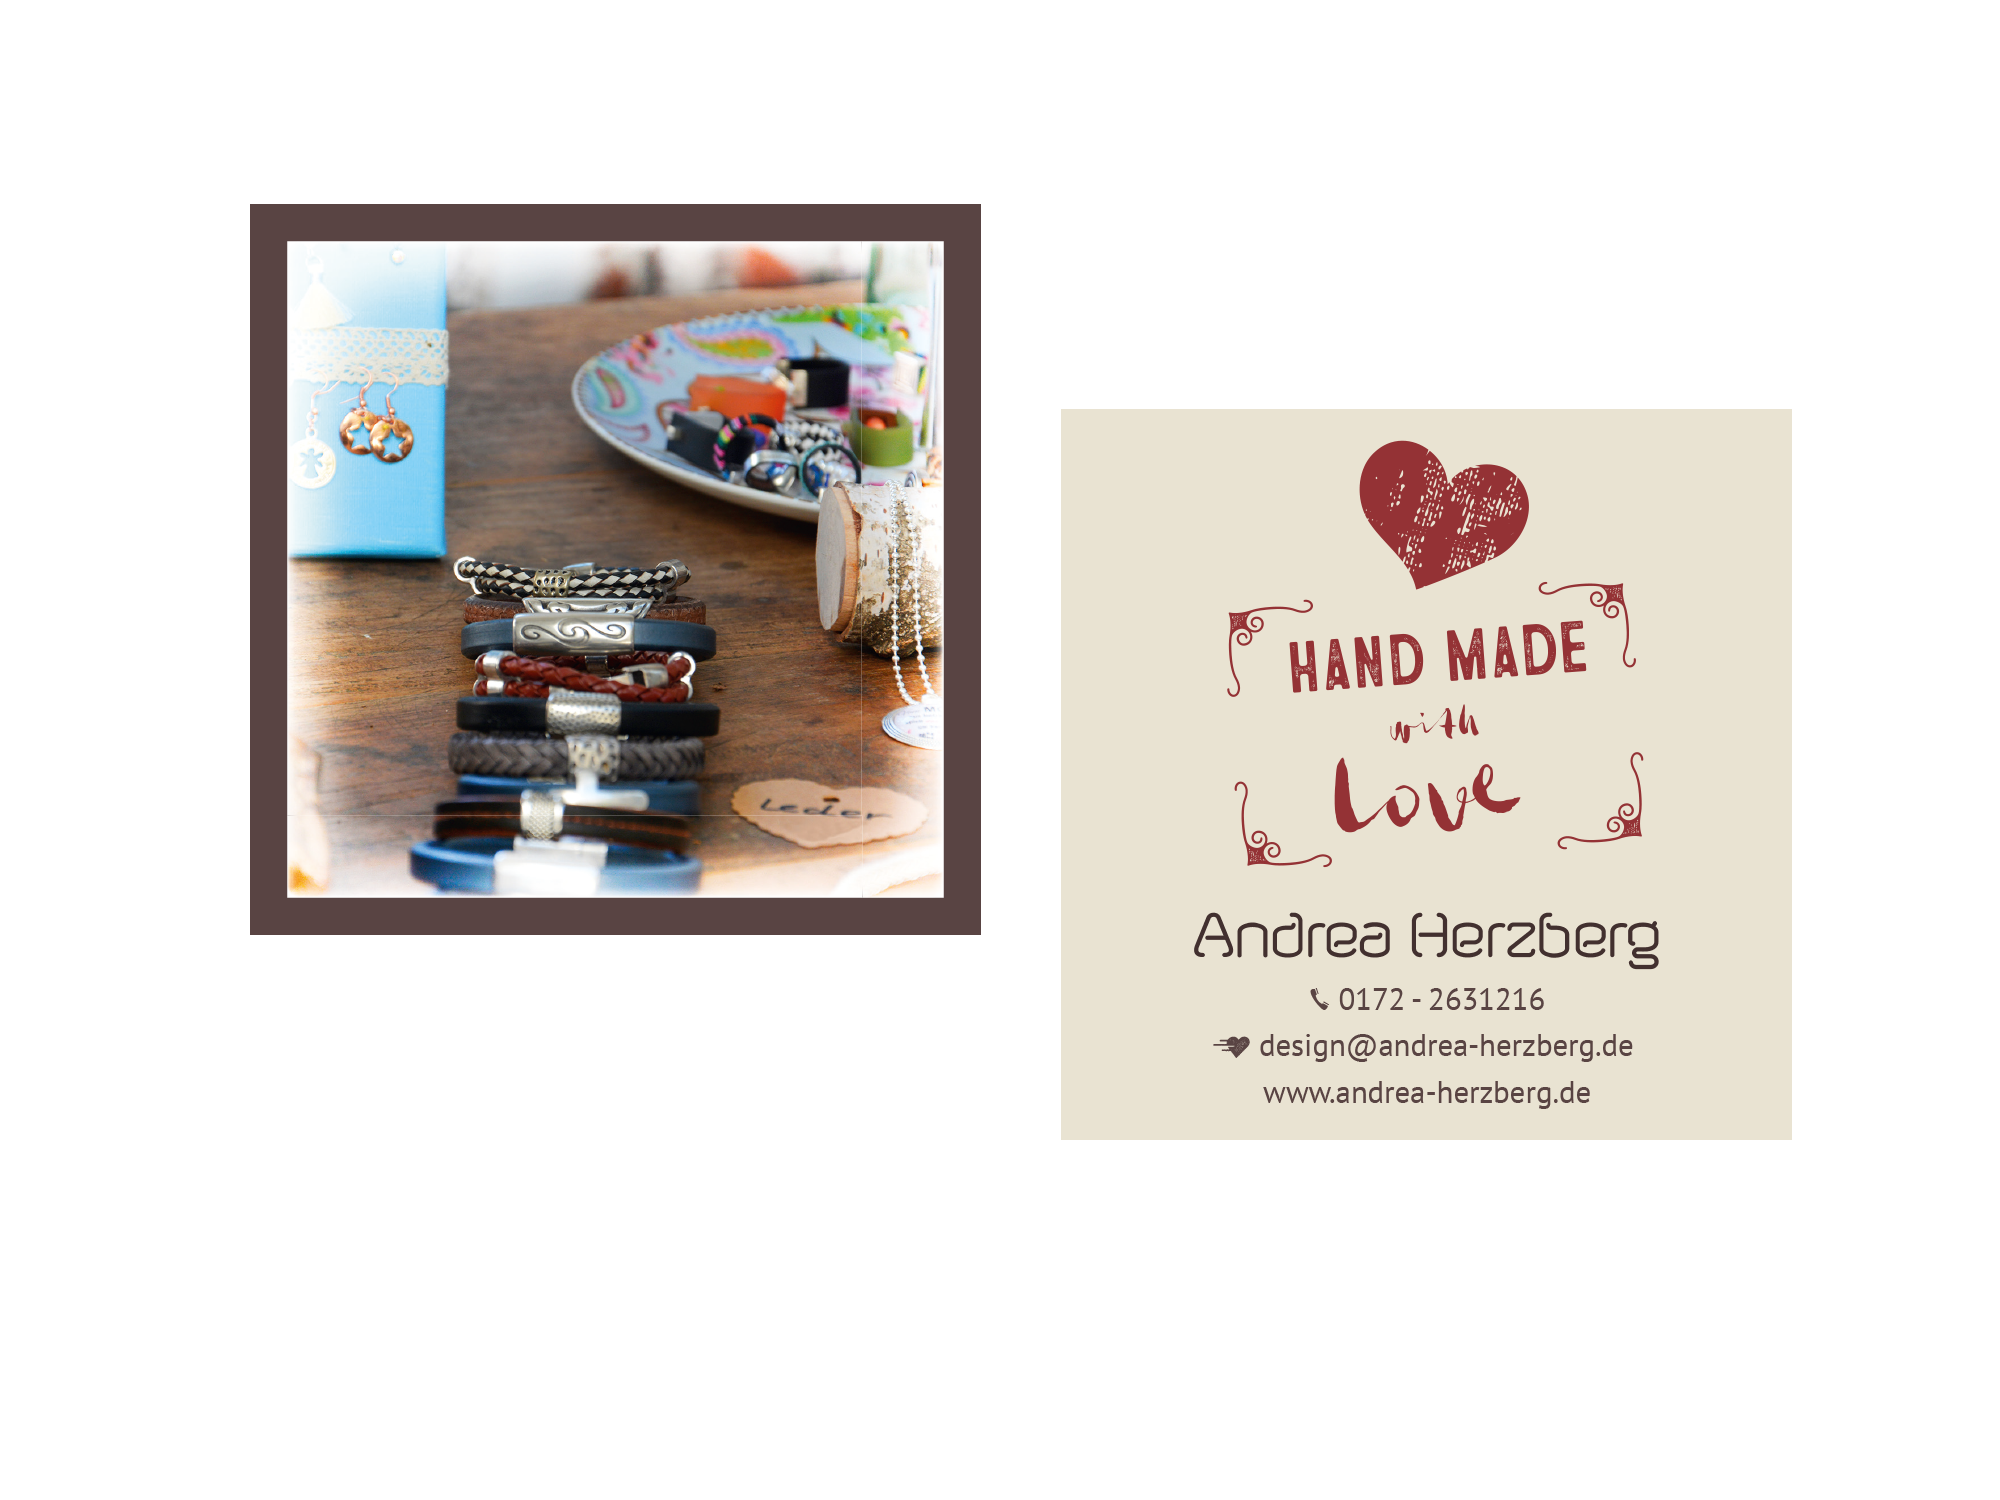 Andra-herzberg flyer by trapp-design 2016-12 4